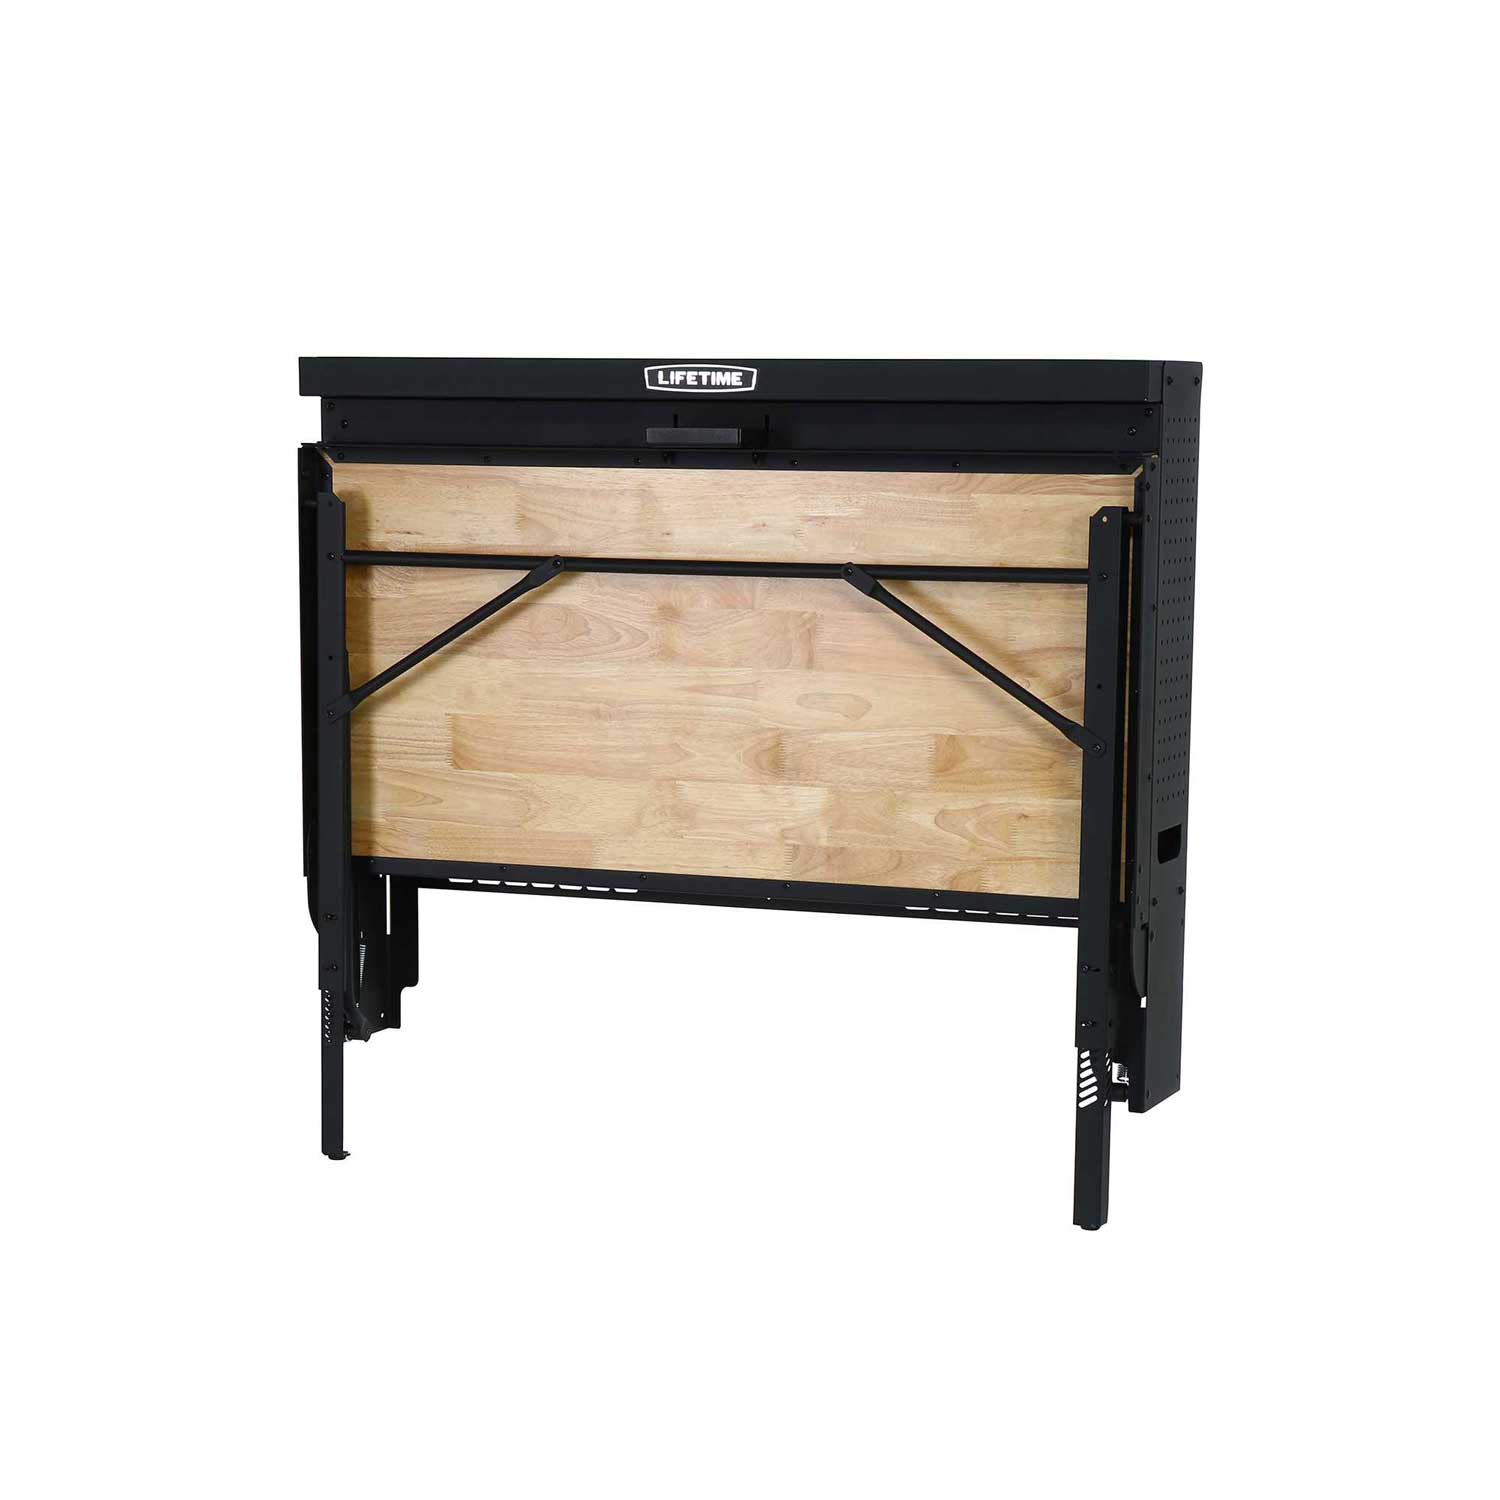 Lifetime Garage Fold up Work Table on Sale with Fast Shipping